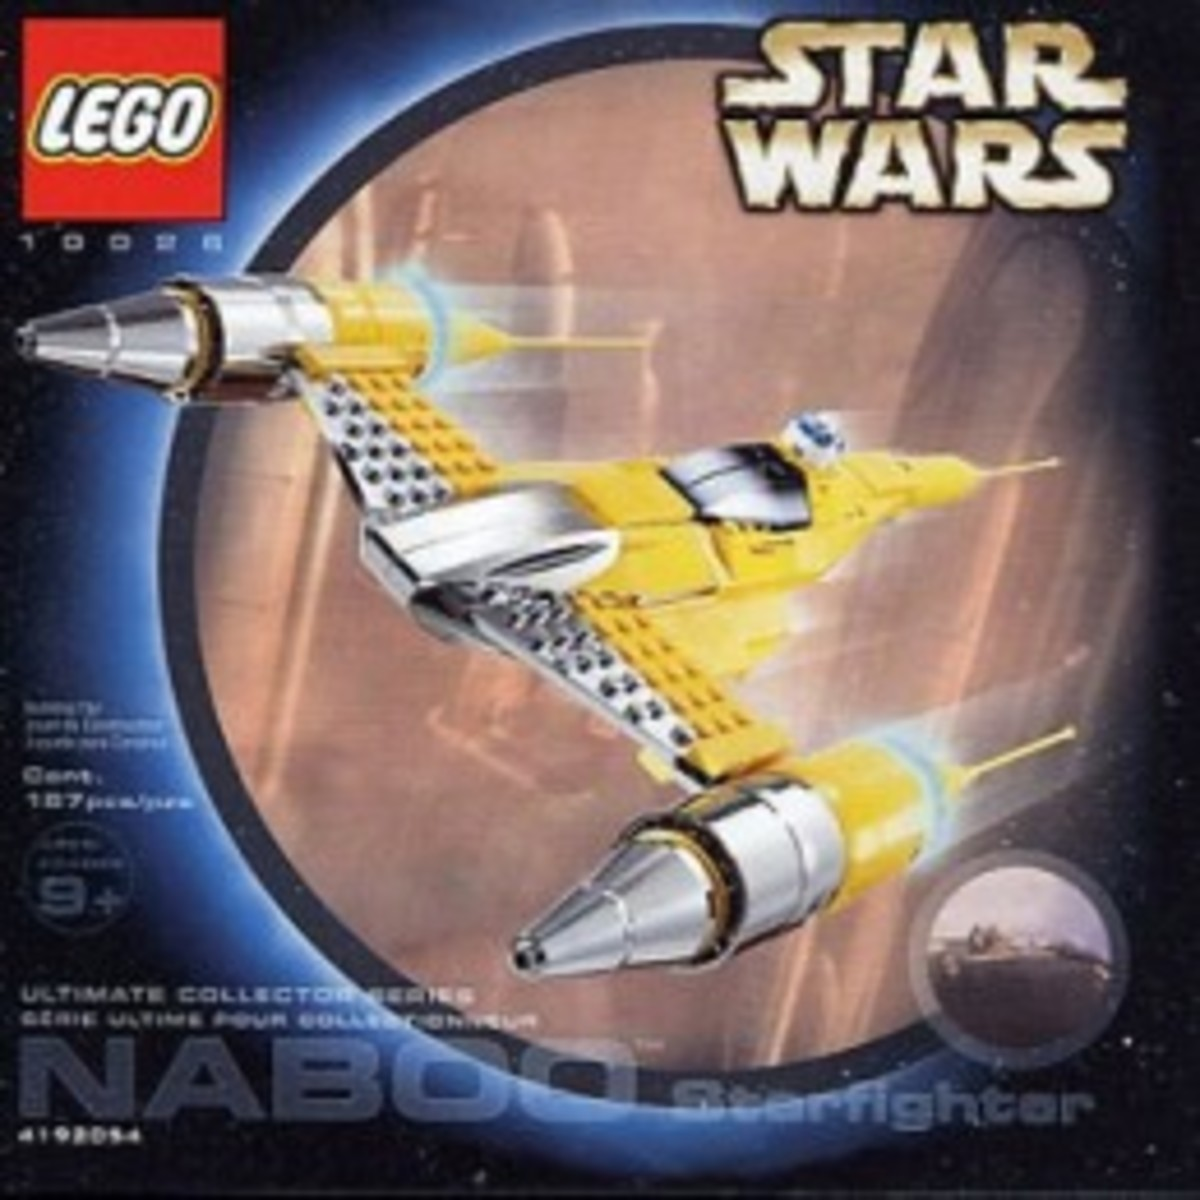 Lego Star Wars Naboo Starfighter 10026